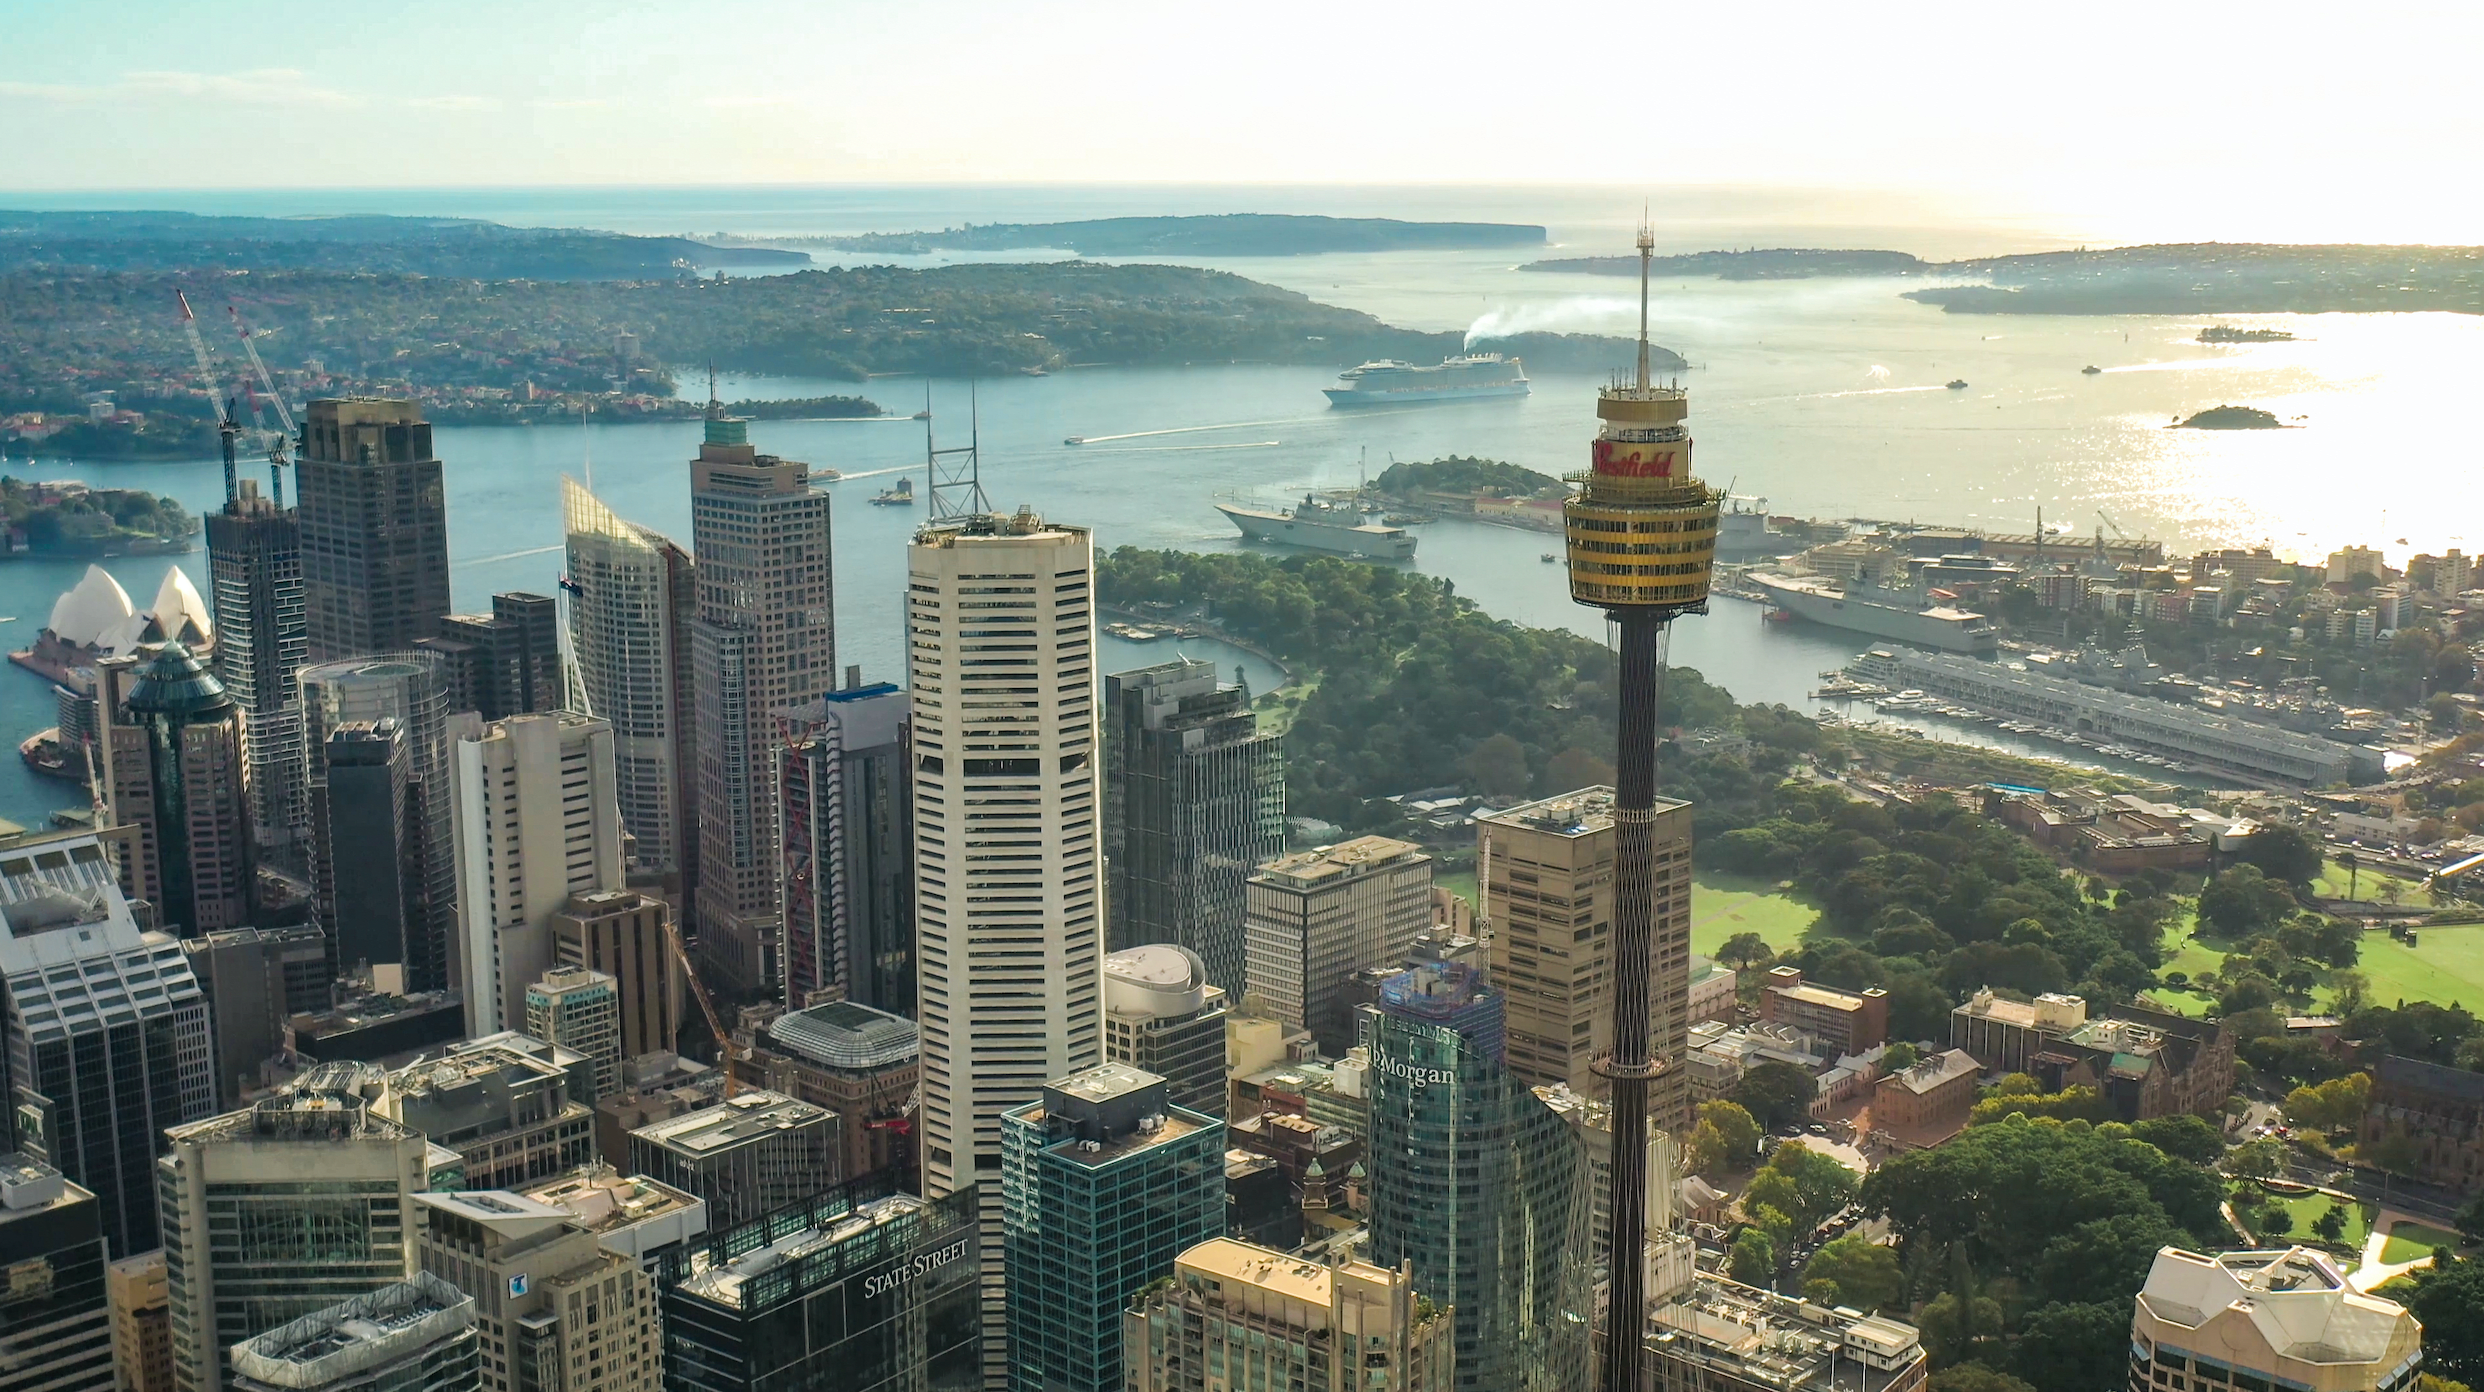 From 300m towers to climate change resilient infrastructure: City of Sydney opens up future CBD plan for public discussion